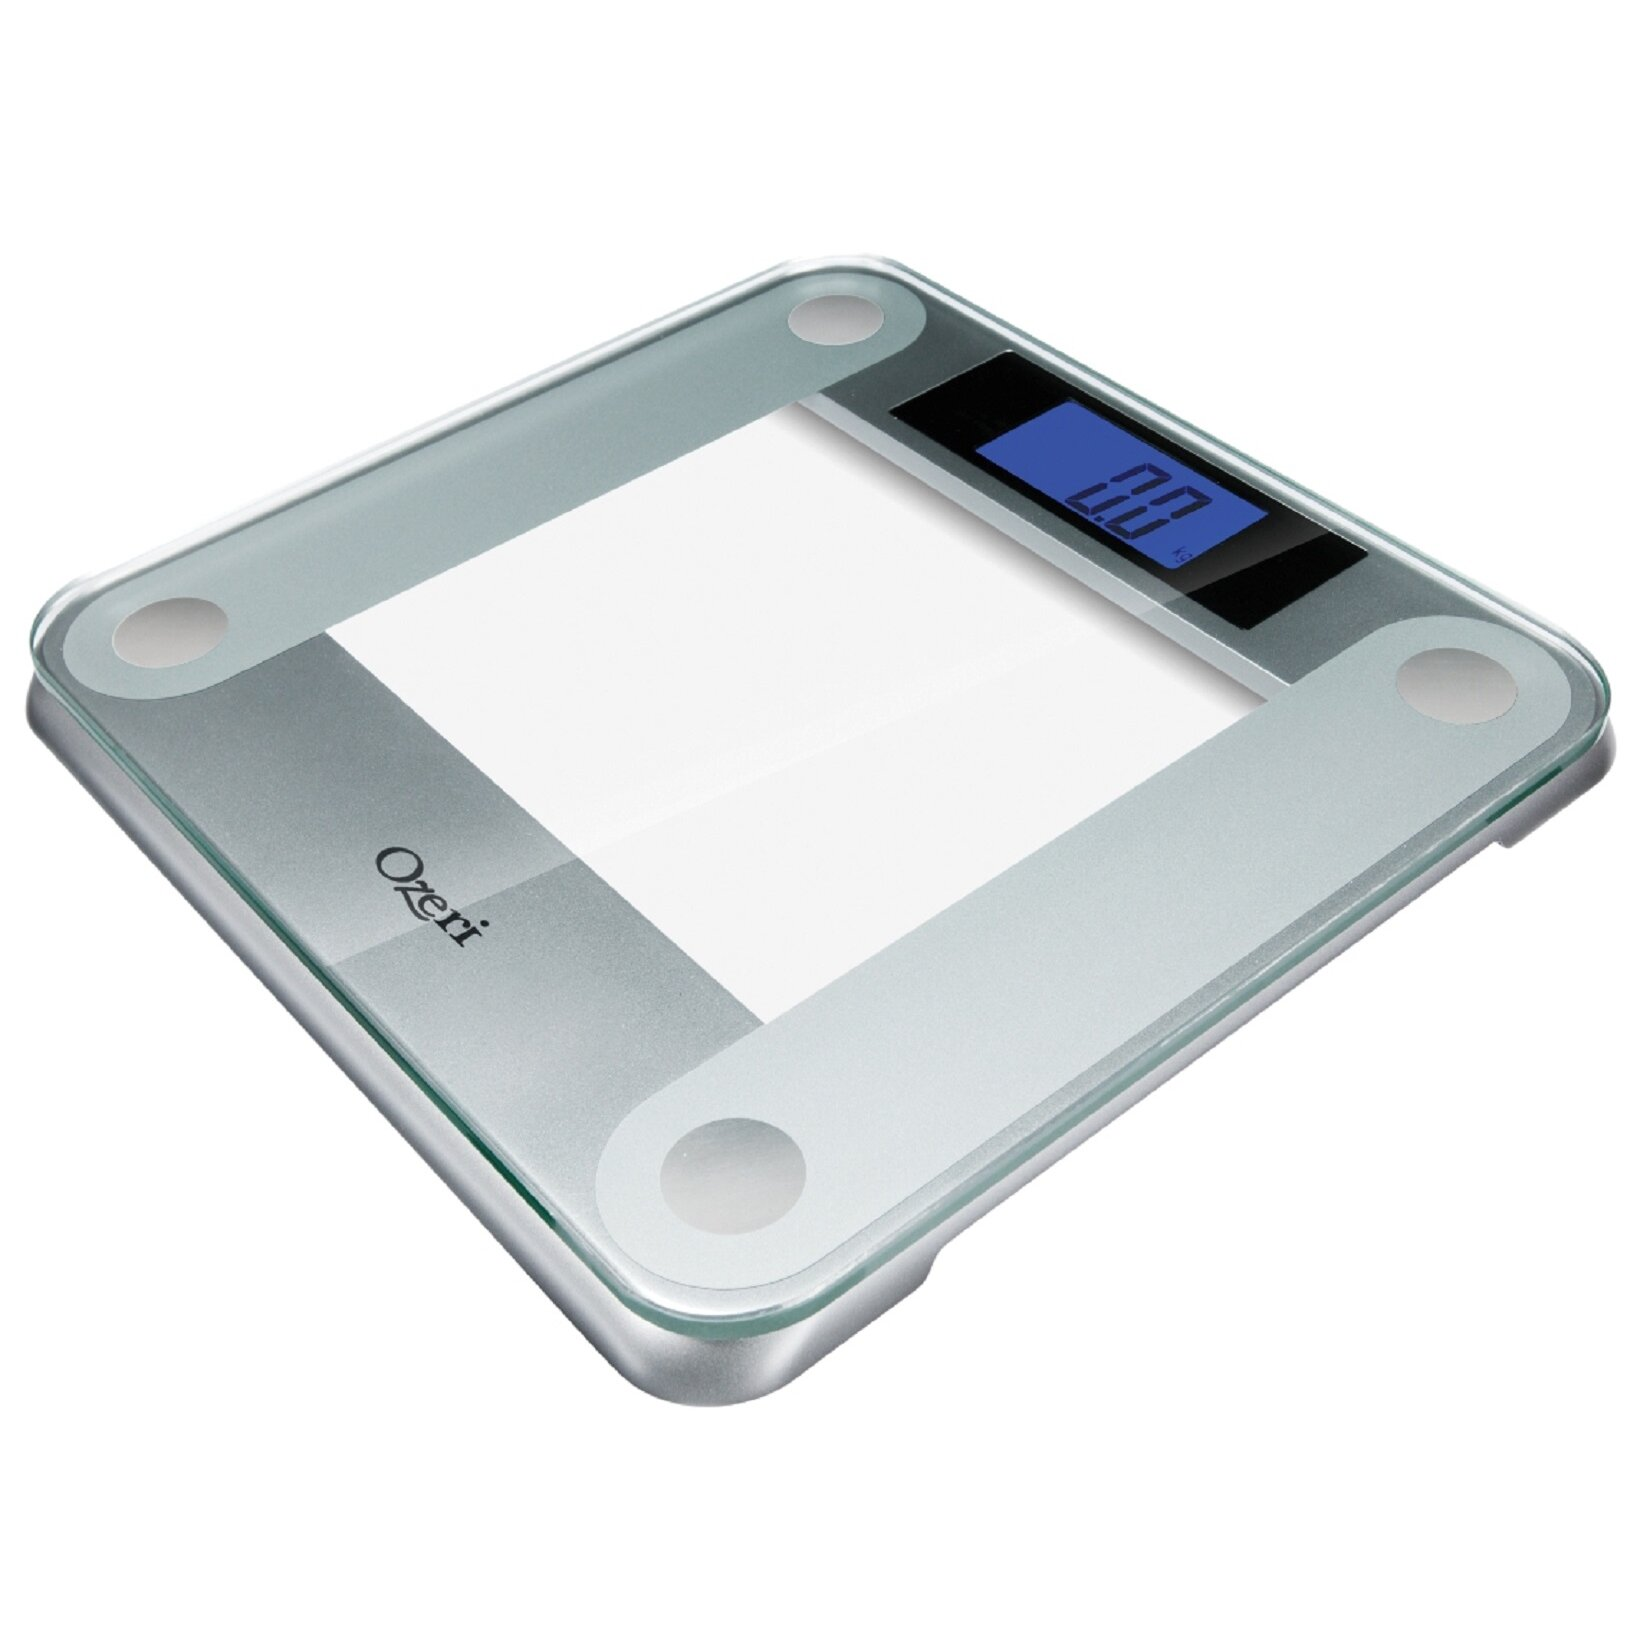 ozeri precision ii digital bathroom scale 440 lbs